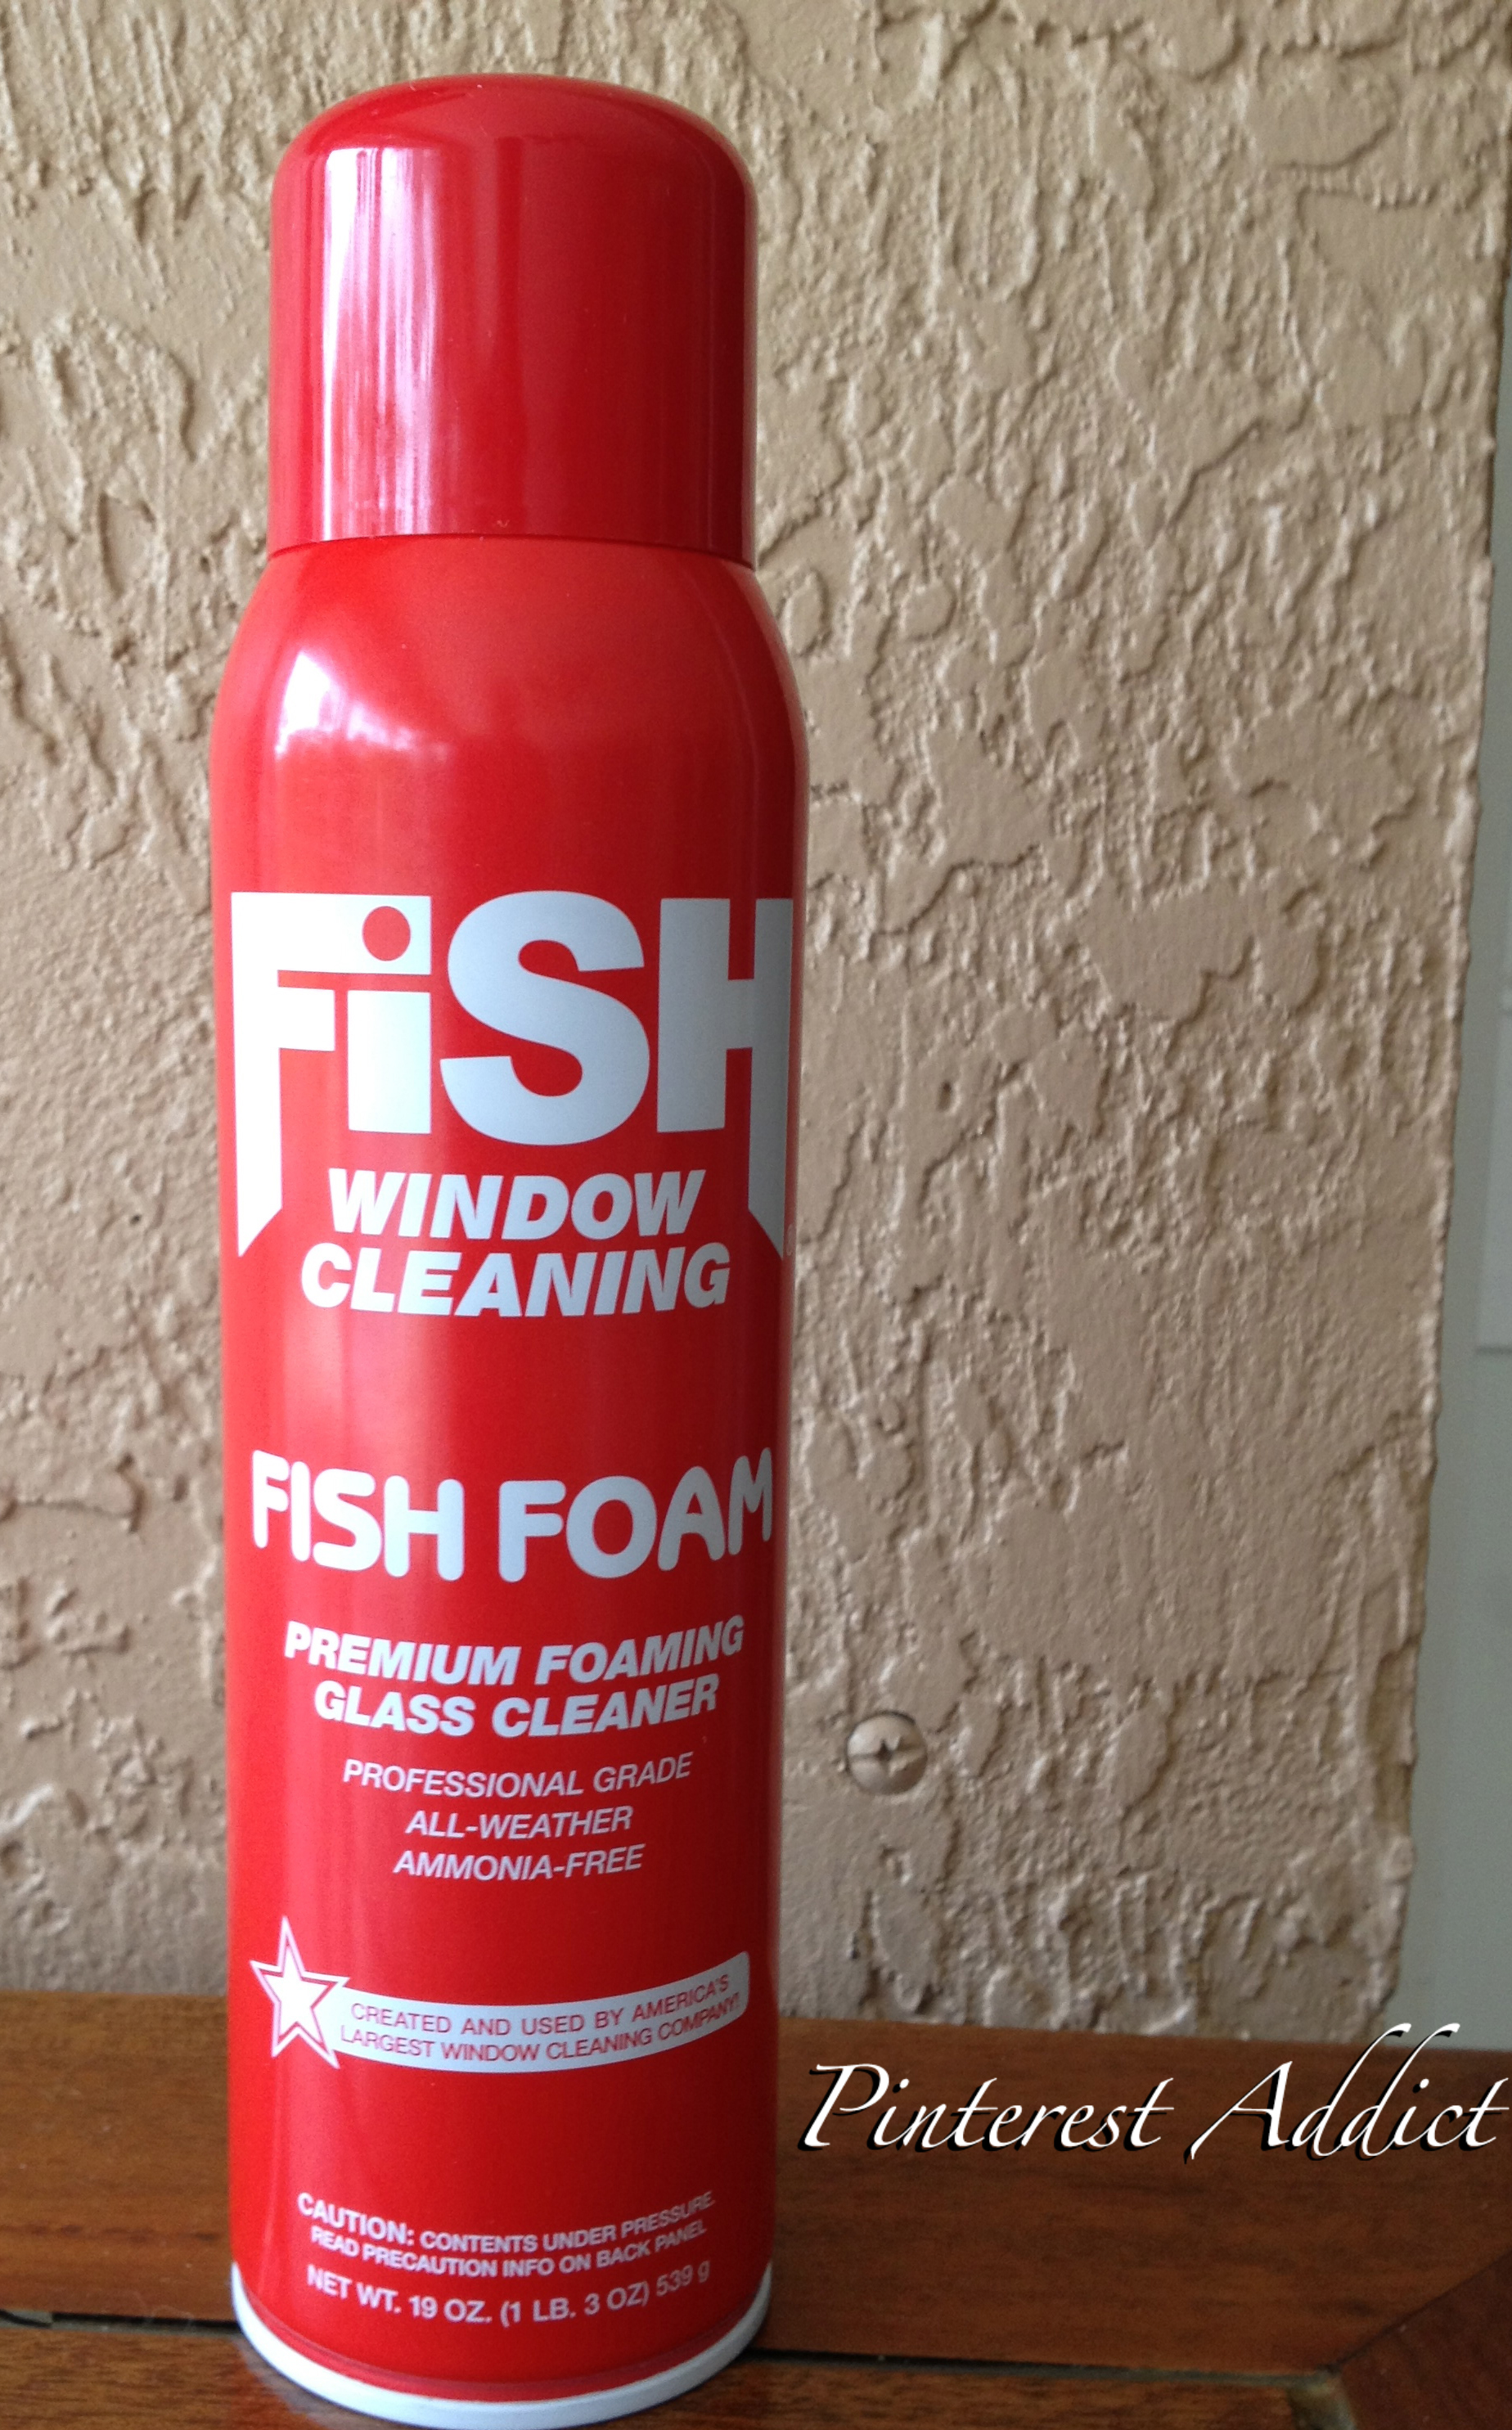 Fish Foam Window Cleaner